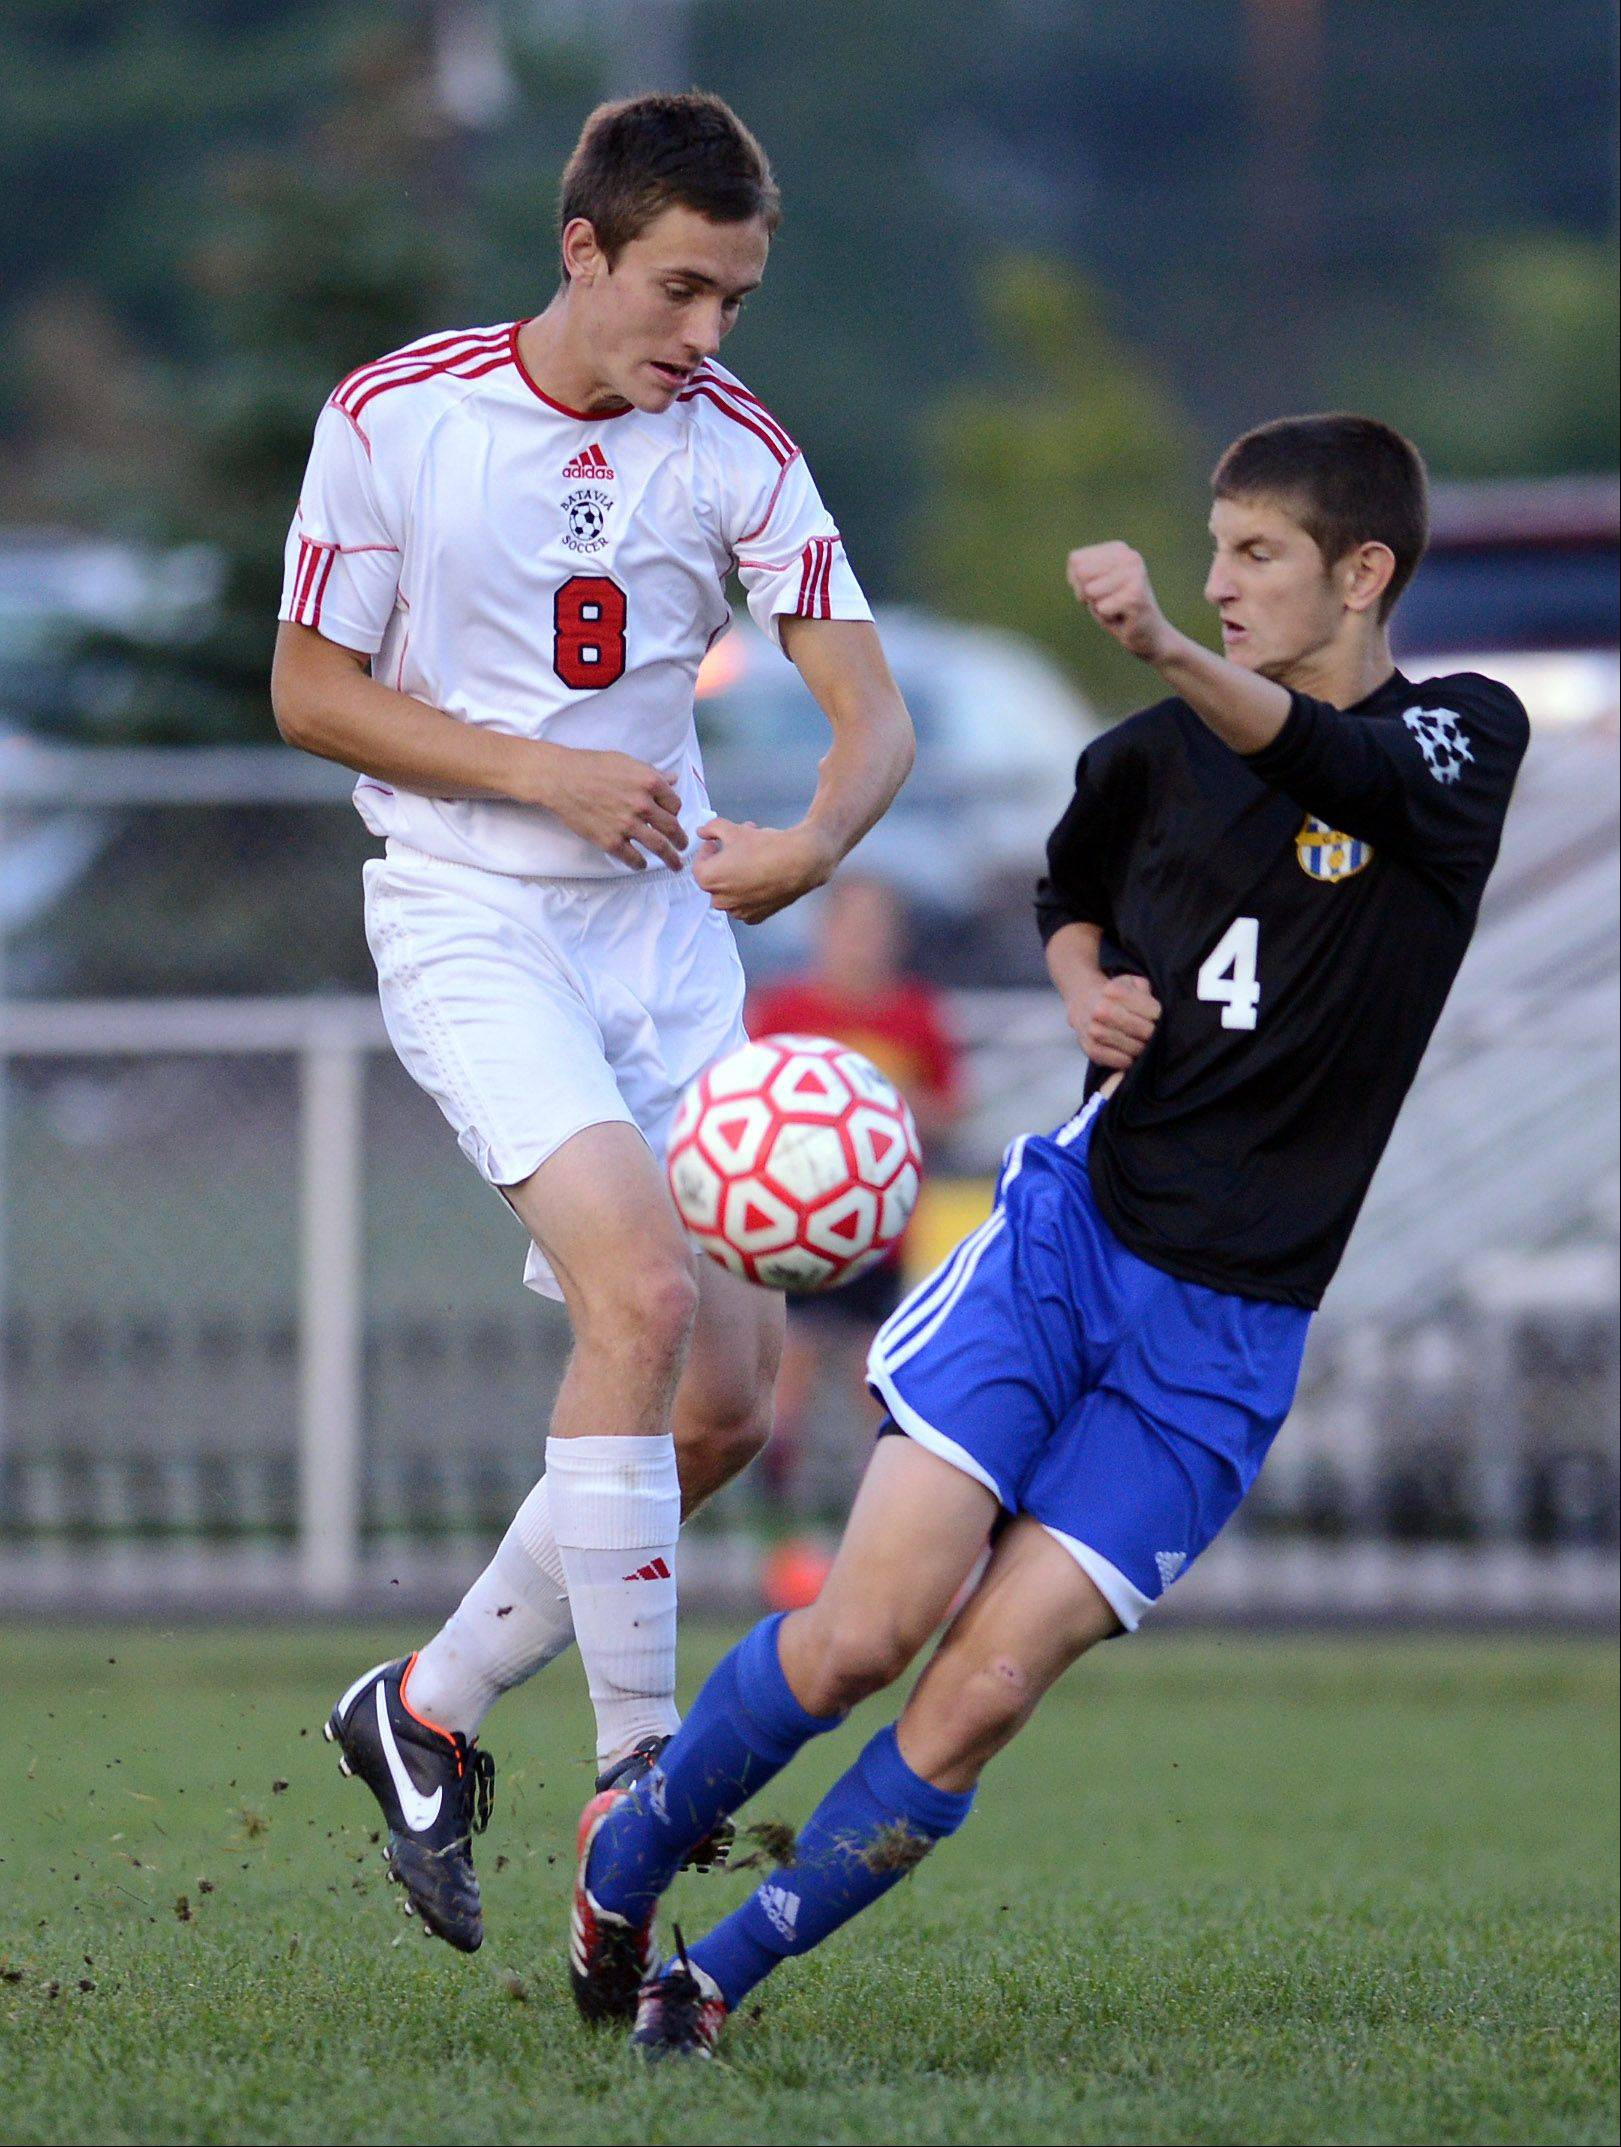 Batavia's Brendan Allen (8) is defended by Geneva's Jason Lagger (4).